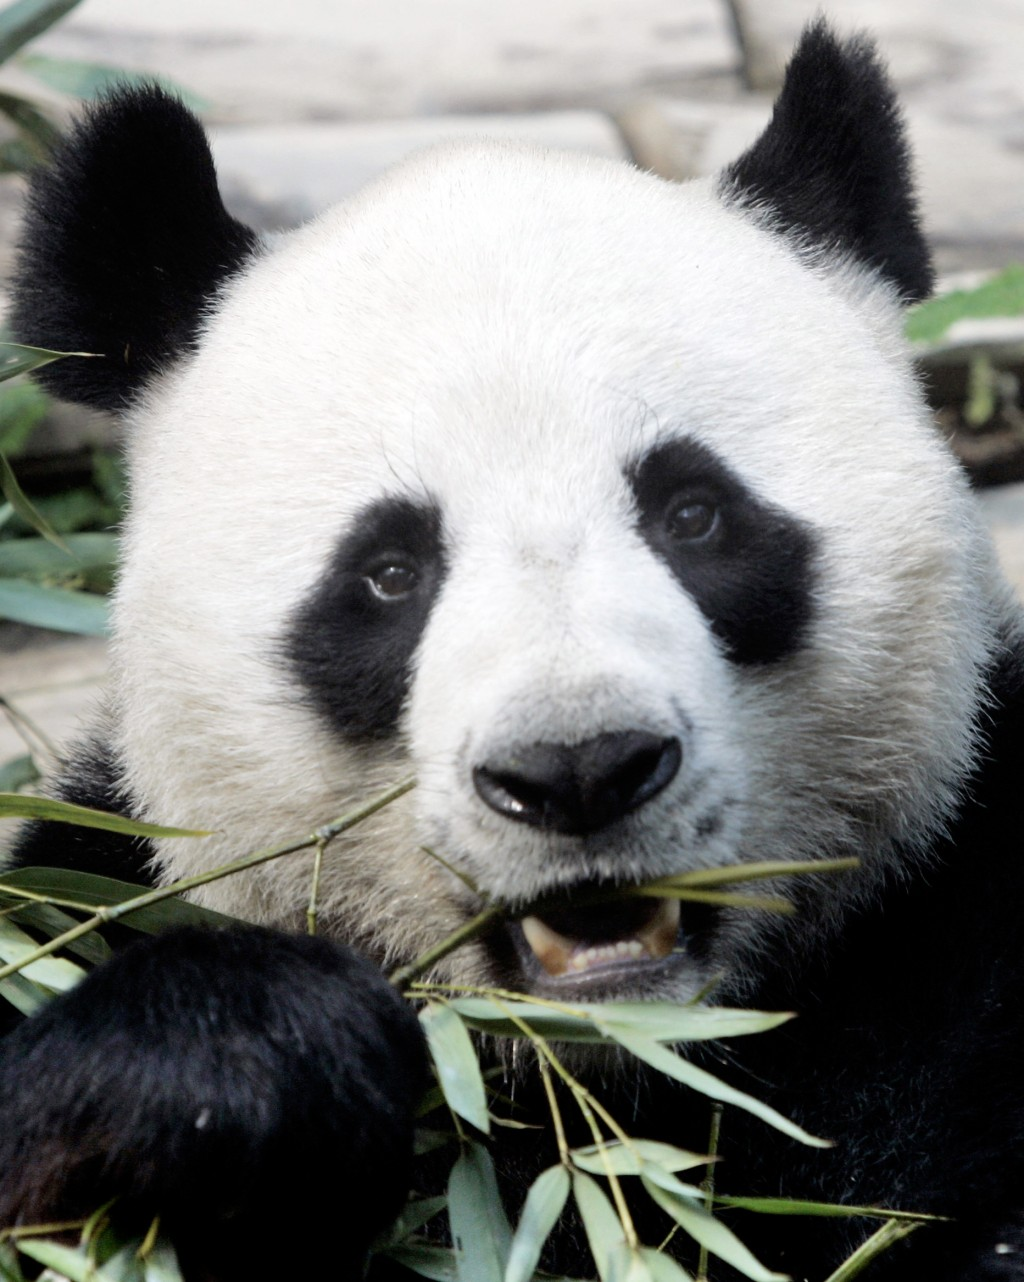 File- In this April 4, 2007. file photo, a male panda named Chuang Chuang chews bamboo leaves inside its cage at the Chiang Mai zoo in Chiang Mai prov